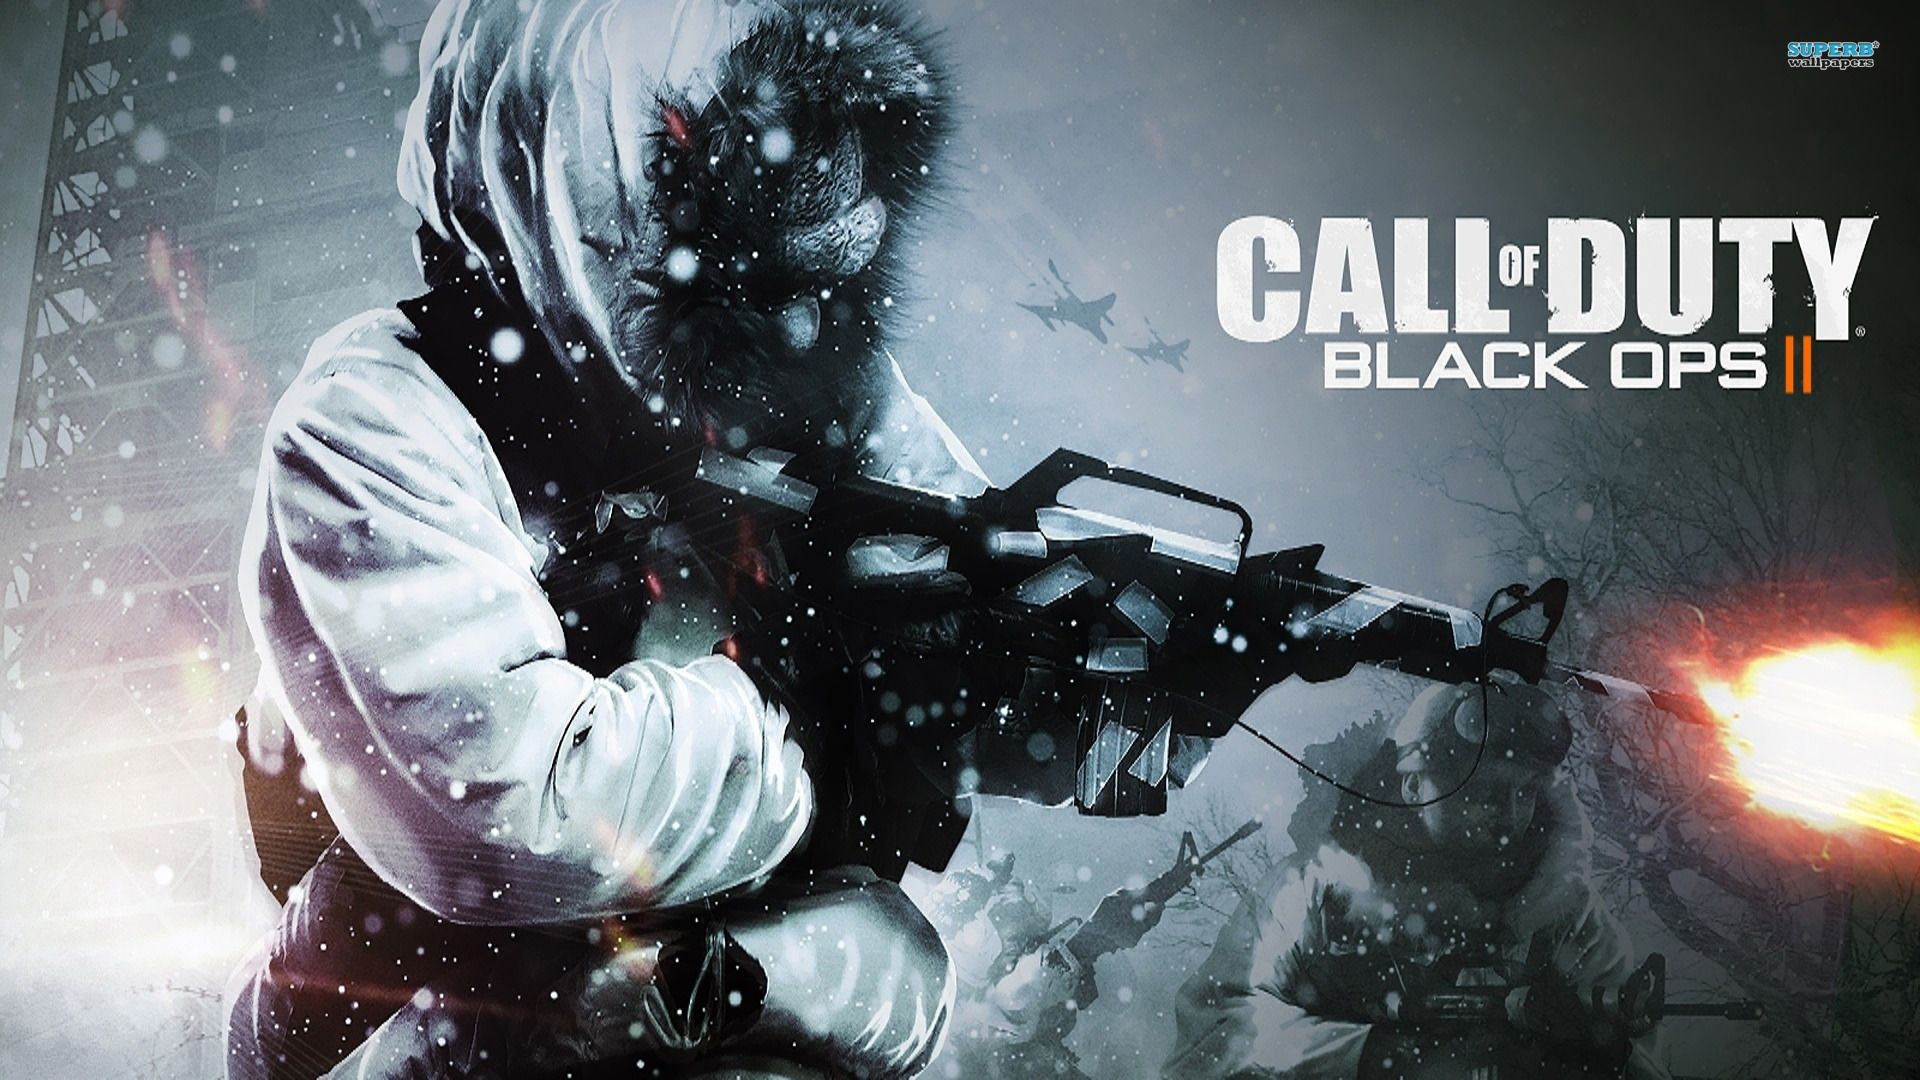 Call Of Duty Black Ops 2 Wallpaper Call Of Duty Black Ops Iii Call Of Duty Black Ops 3 Call Of Duty Black